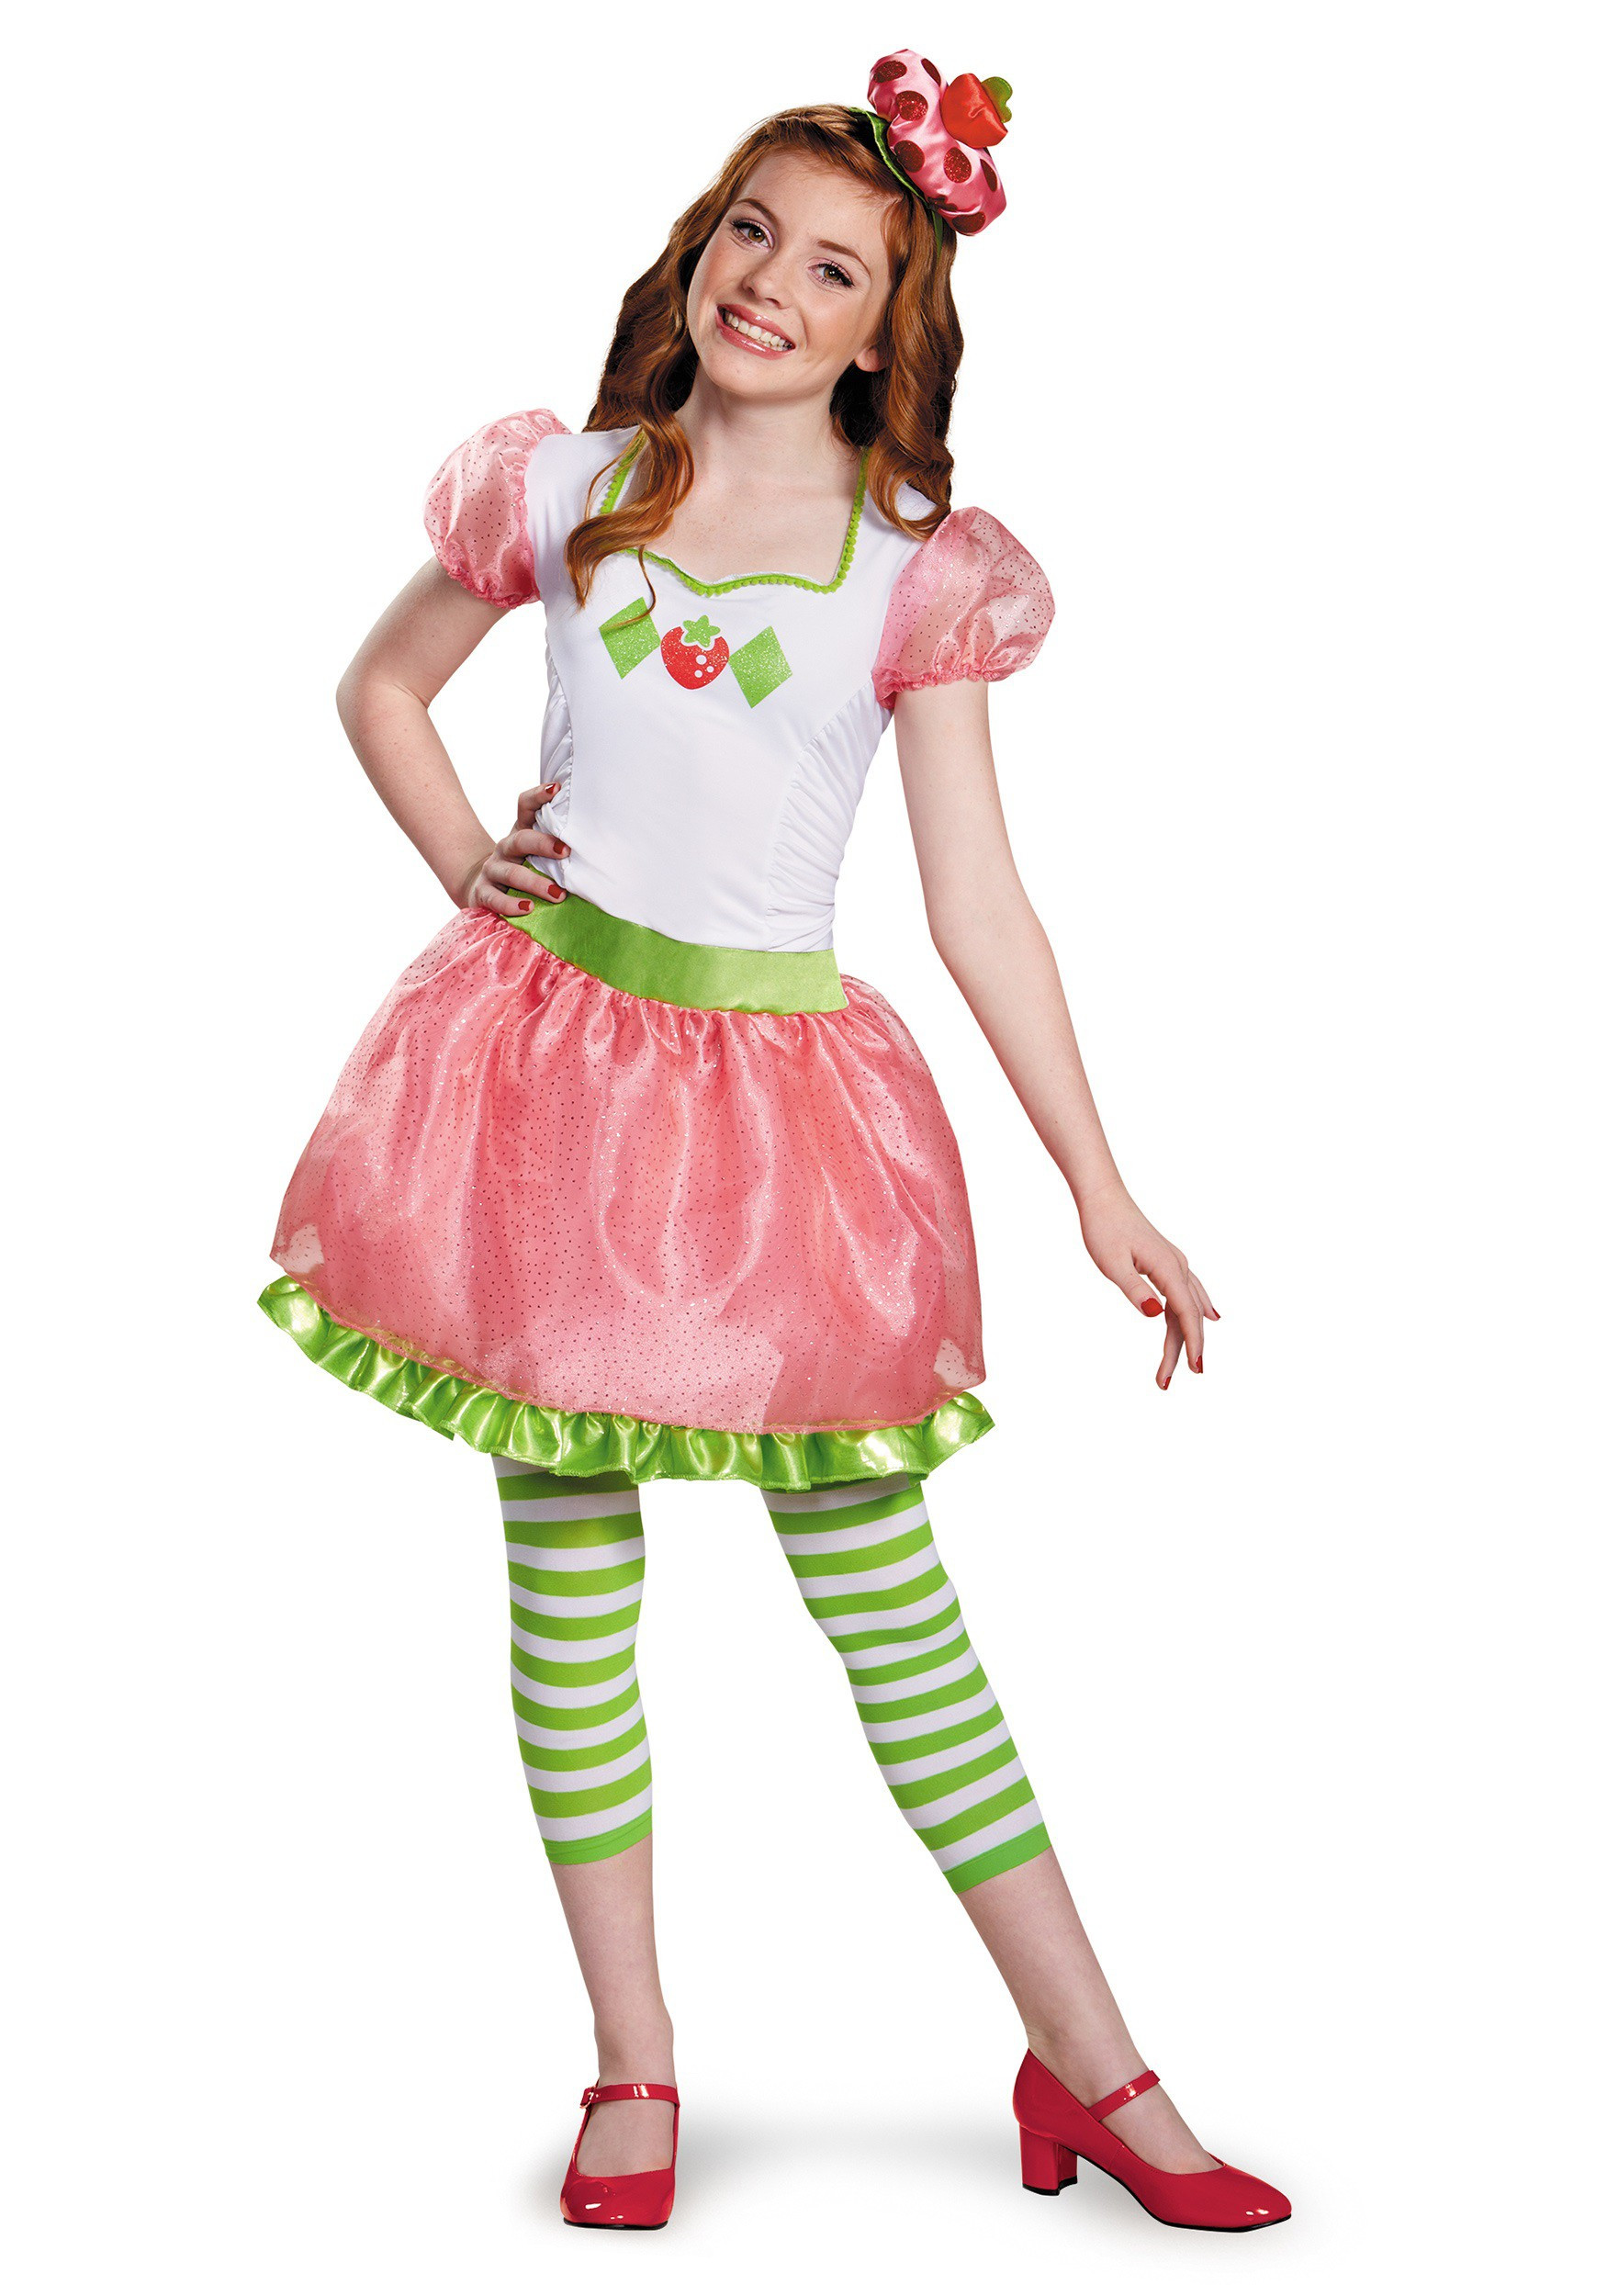 Strawberry Shortcake Halloween Costumes  Strawberry Shortcake Tween Costume